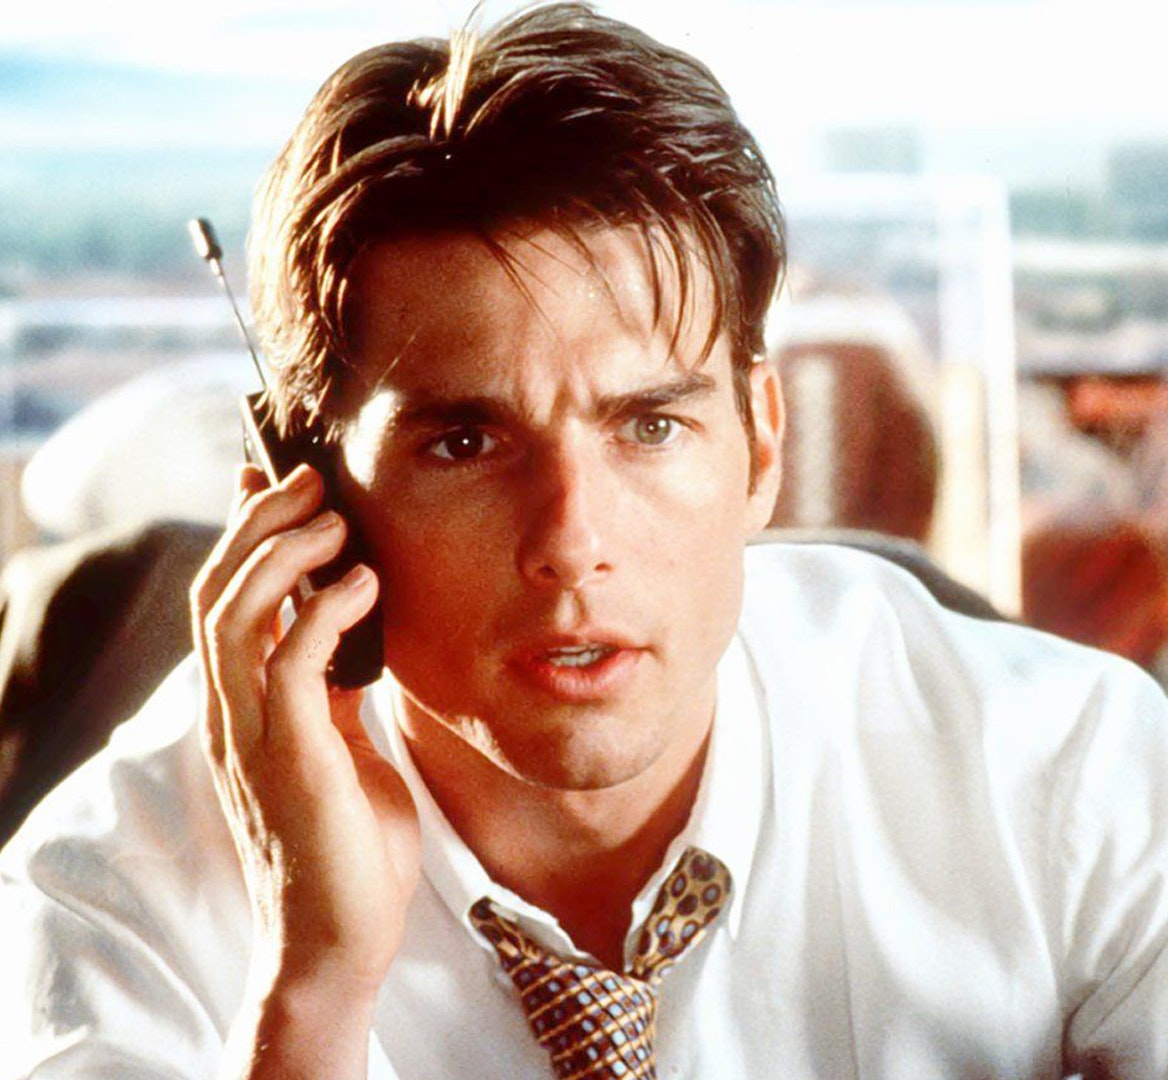 Jerry Maguire mobile